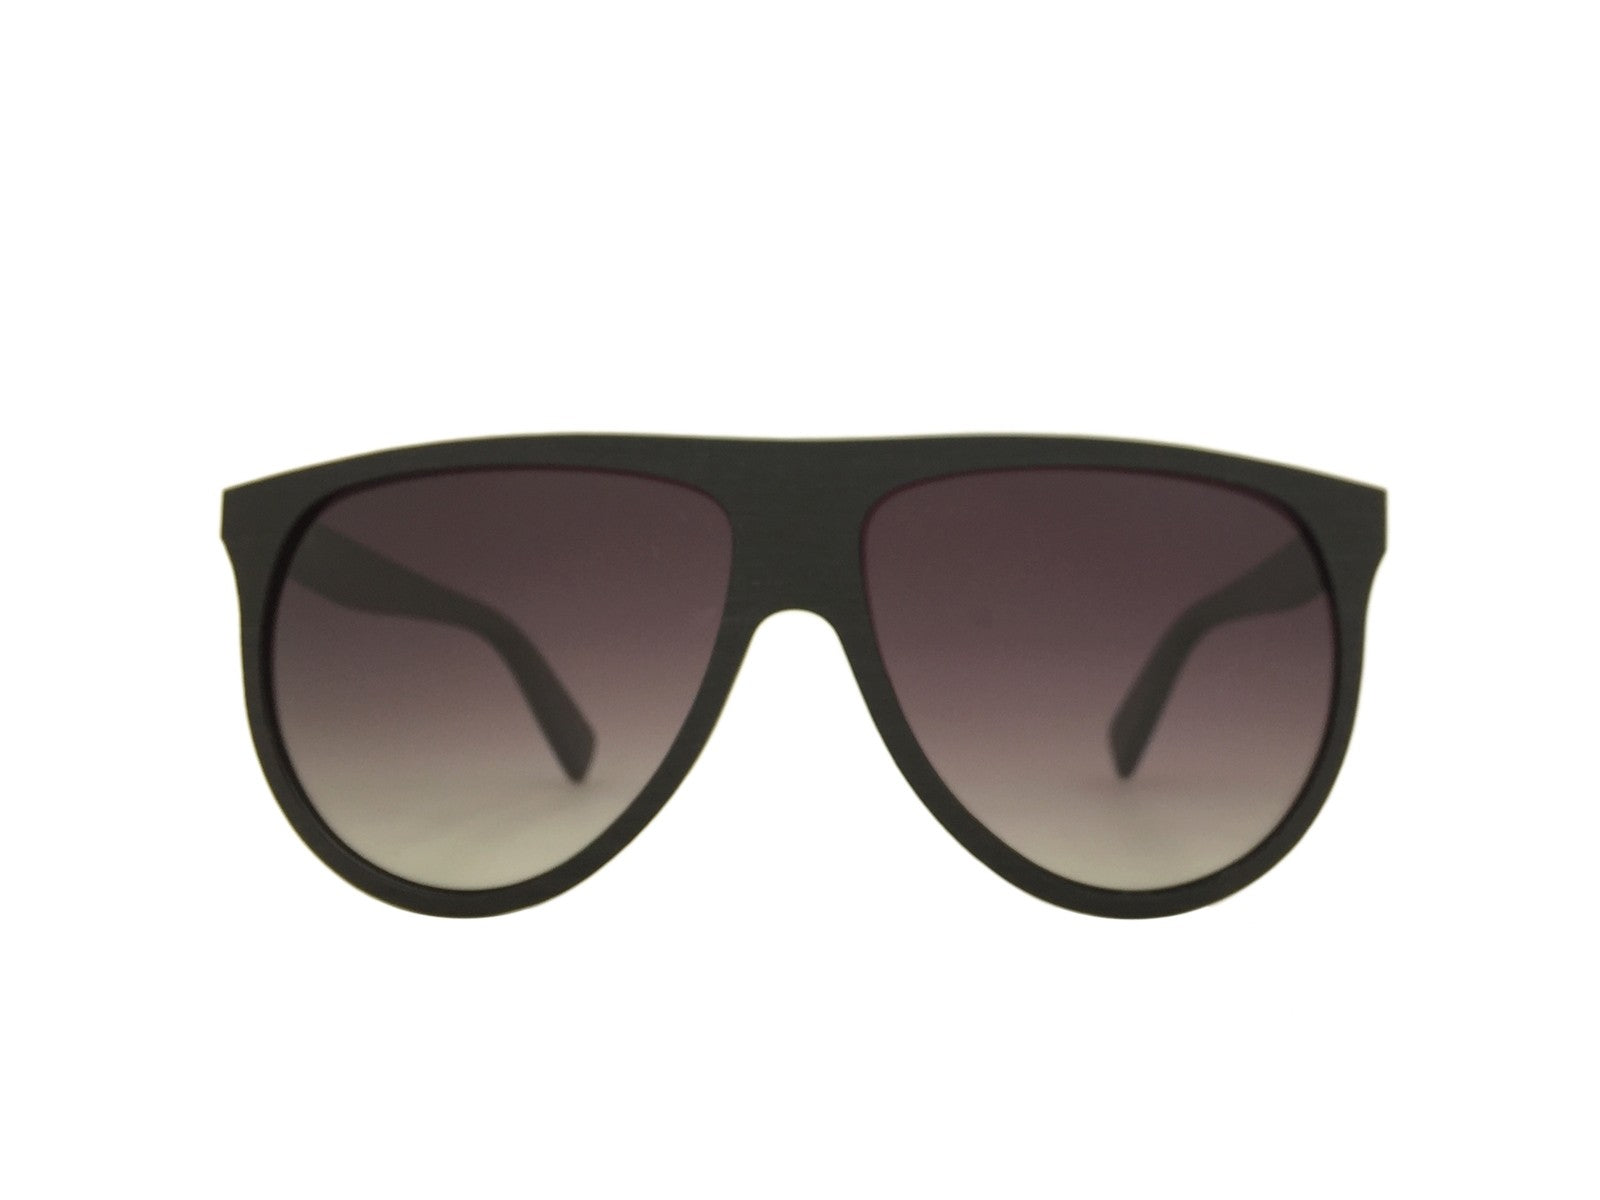 Ebony Wood Sophia Aviator Sunglasses